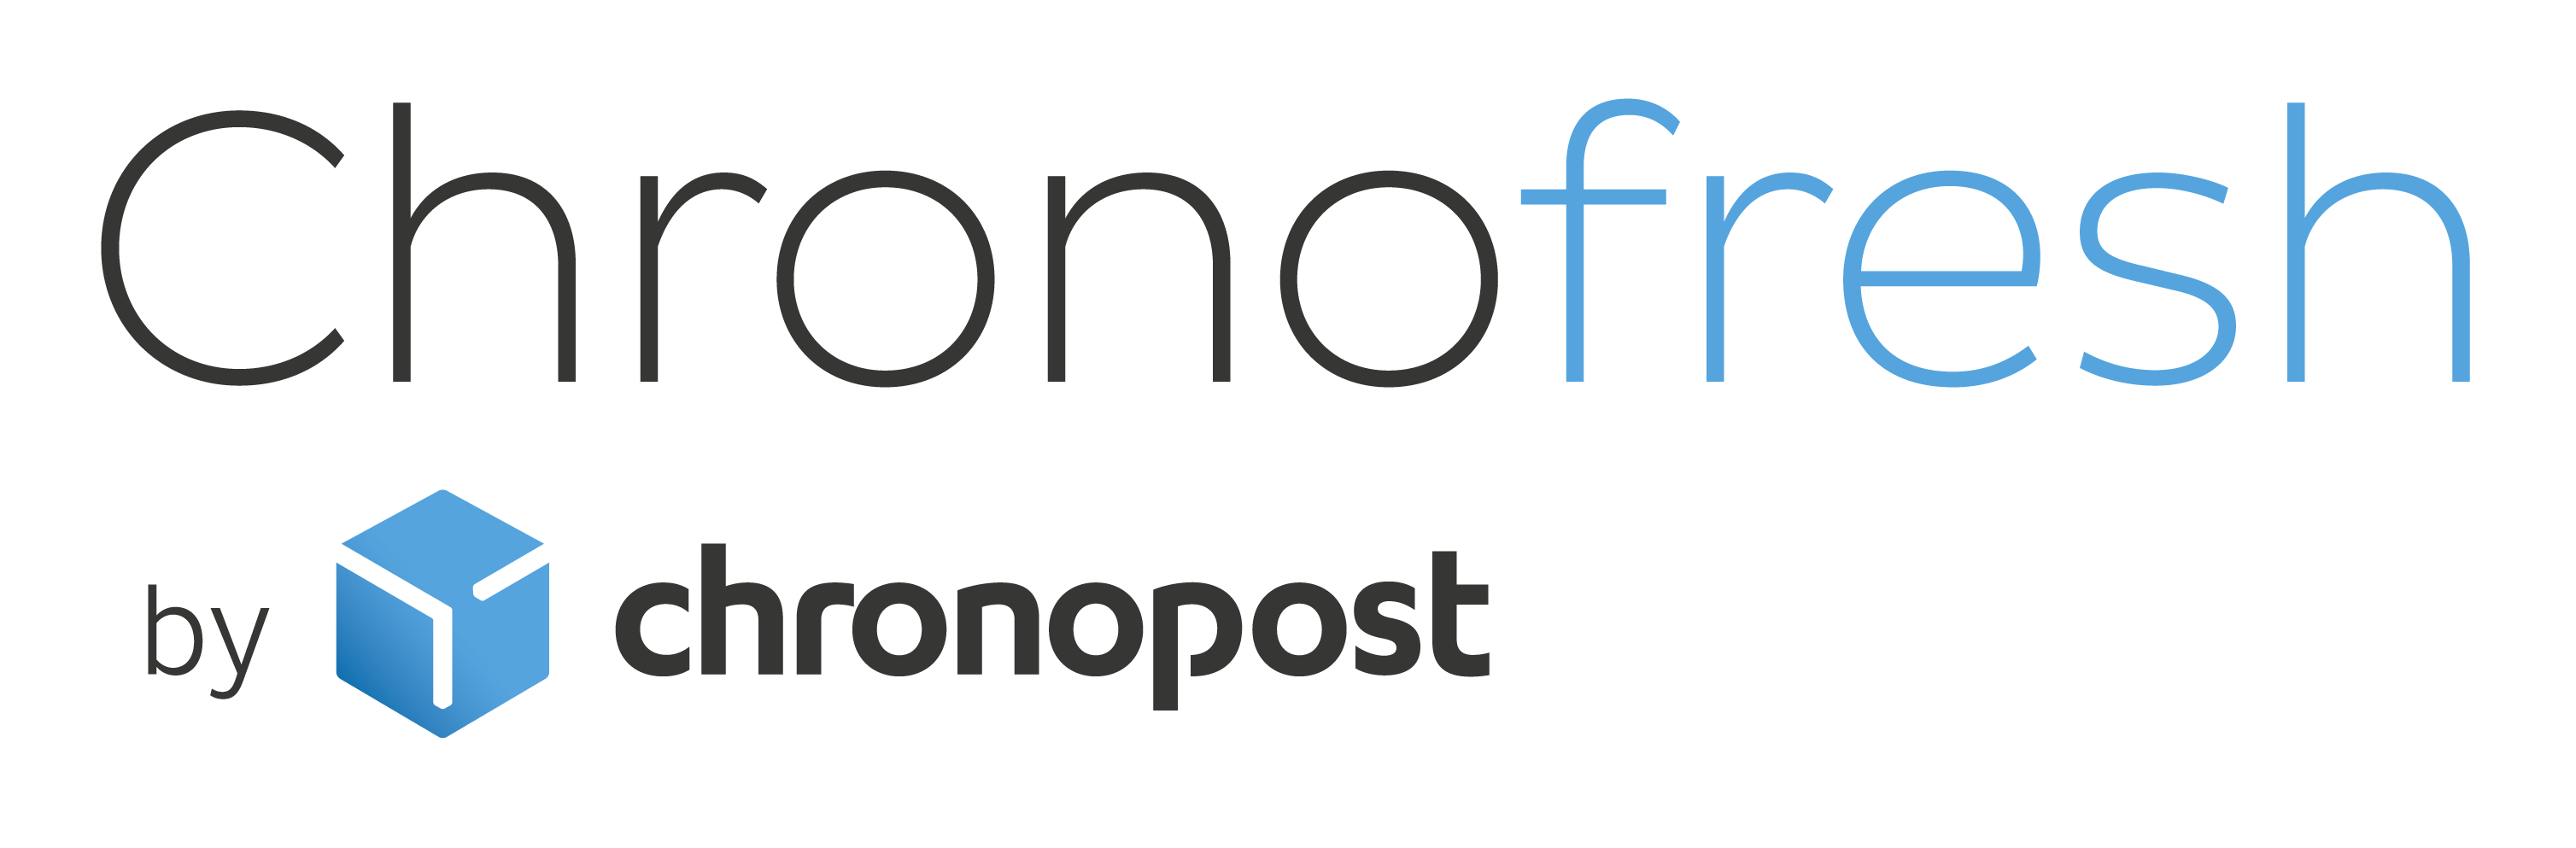 Chronofresh by chronopost